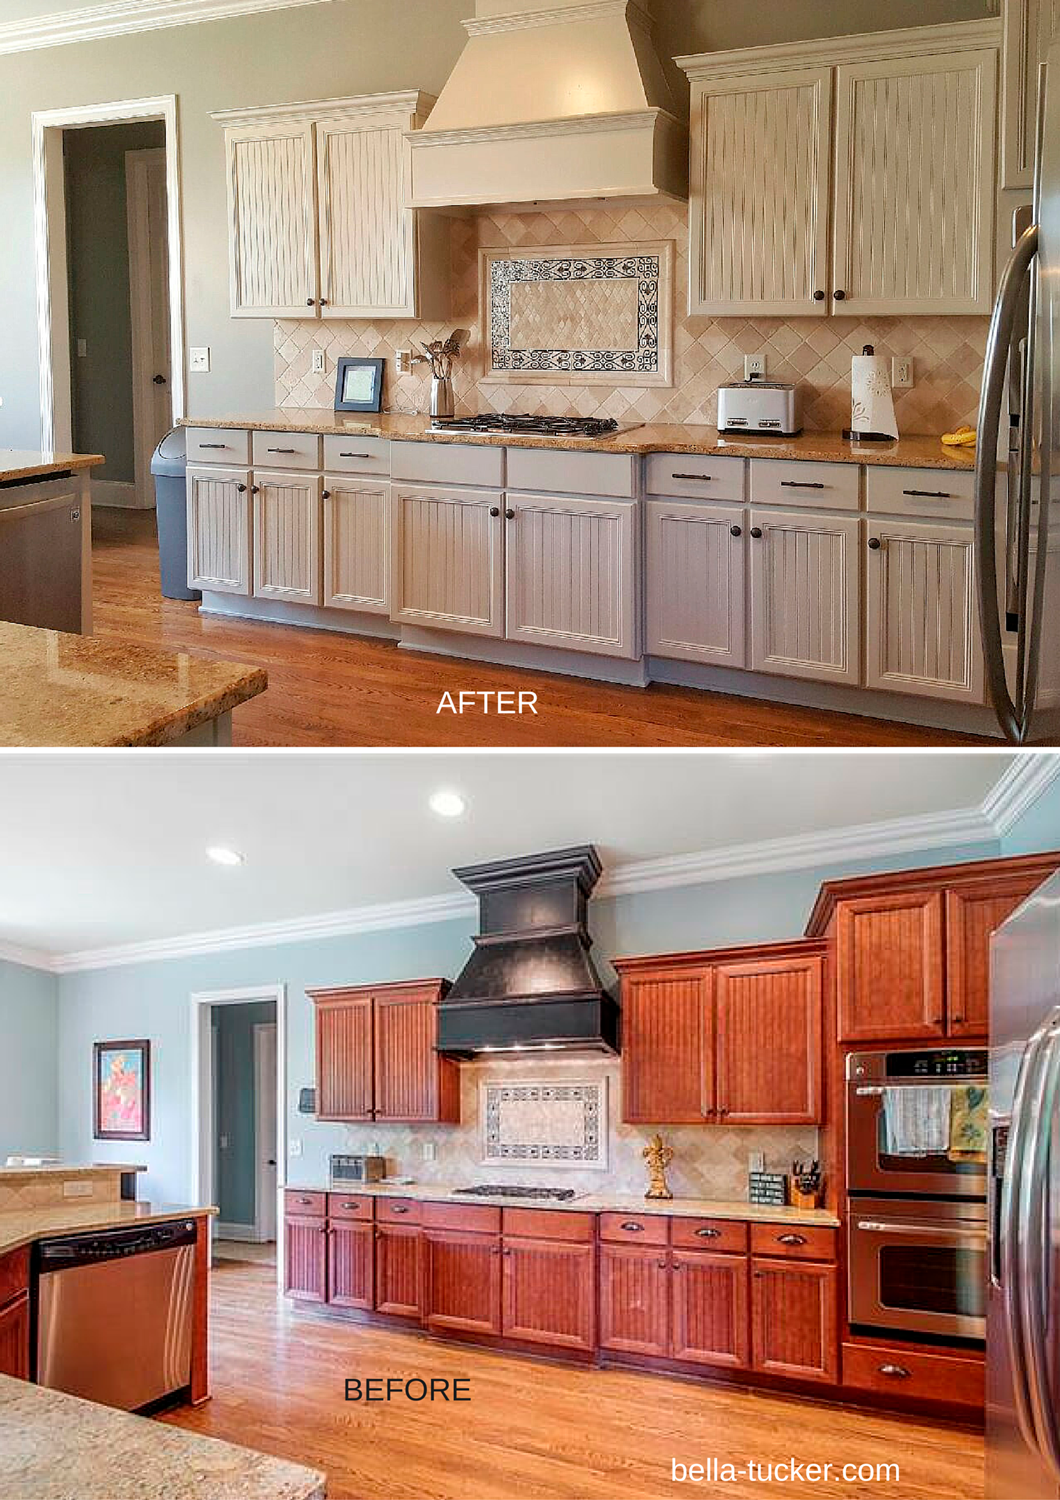 Painted Cabinets Nashville TN Before and After Photos on repaint home, repainted cabinets, repaint fireplace,